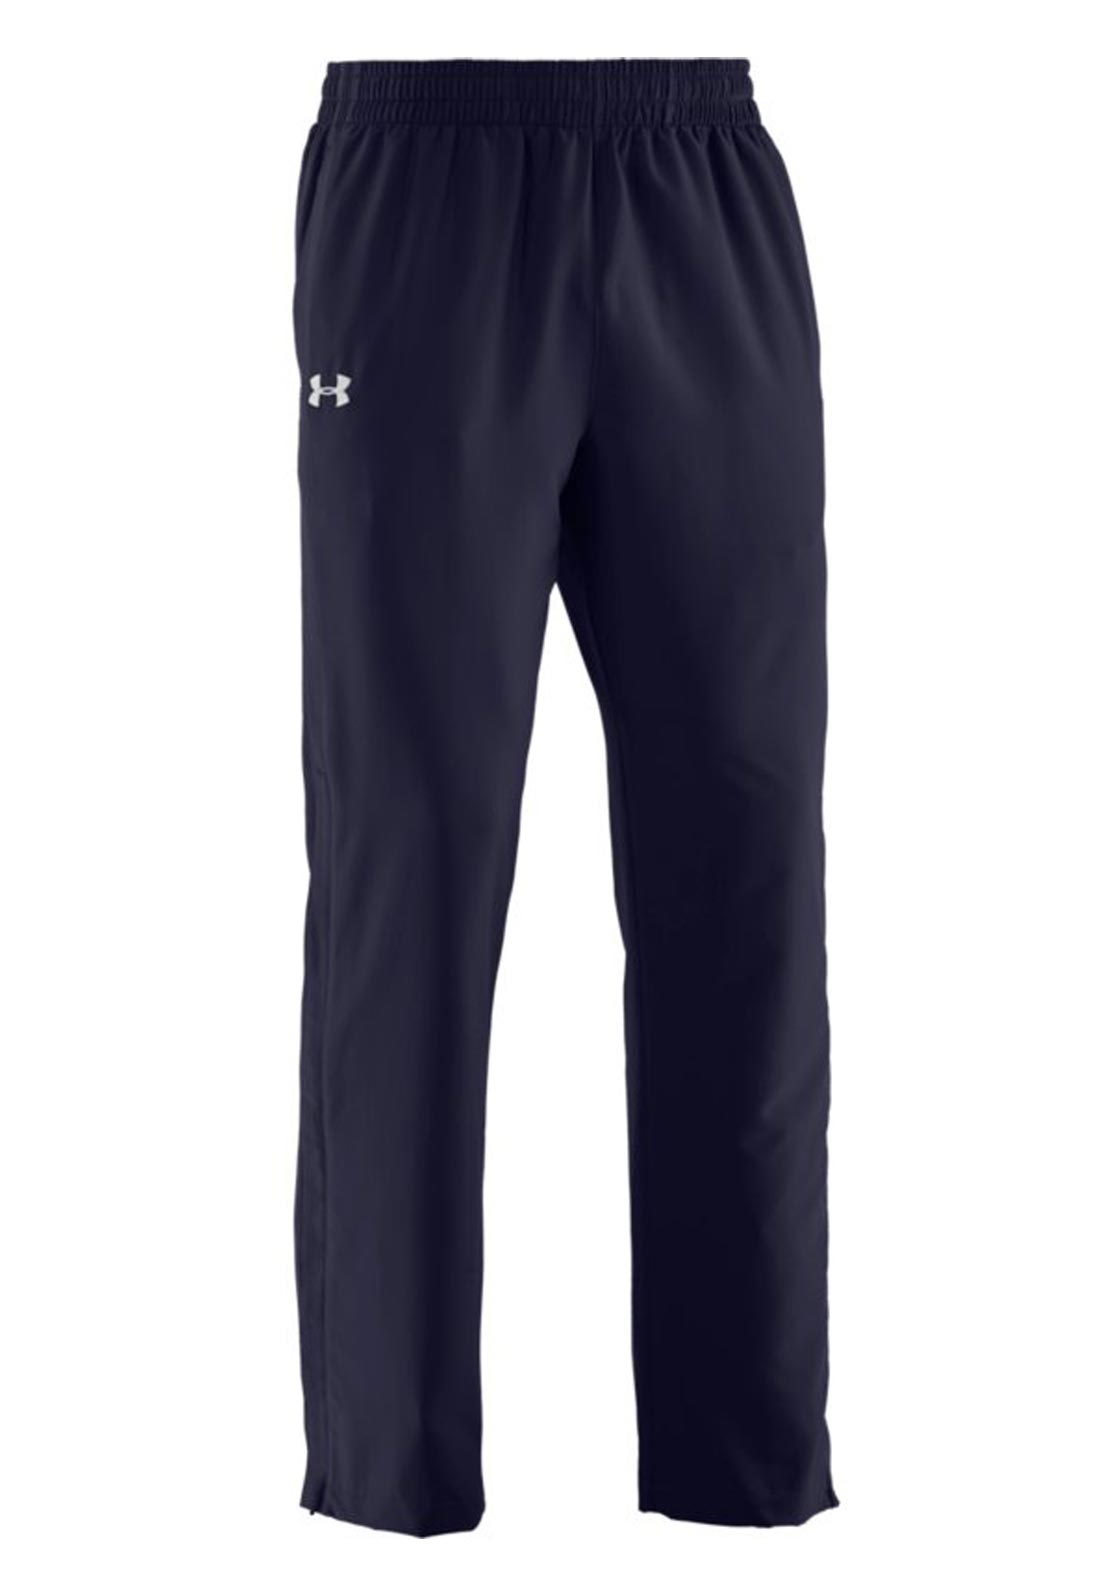 Under Armour Mens Jogging Bottoms, Navy